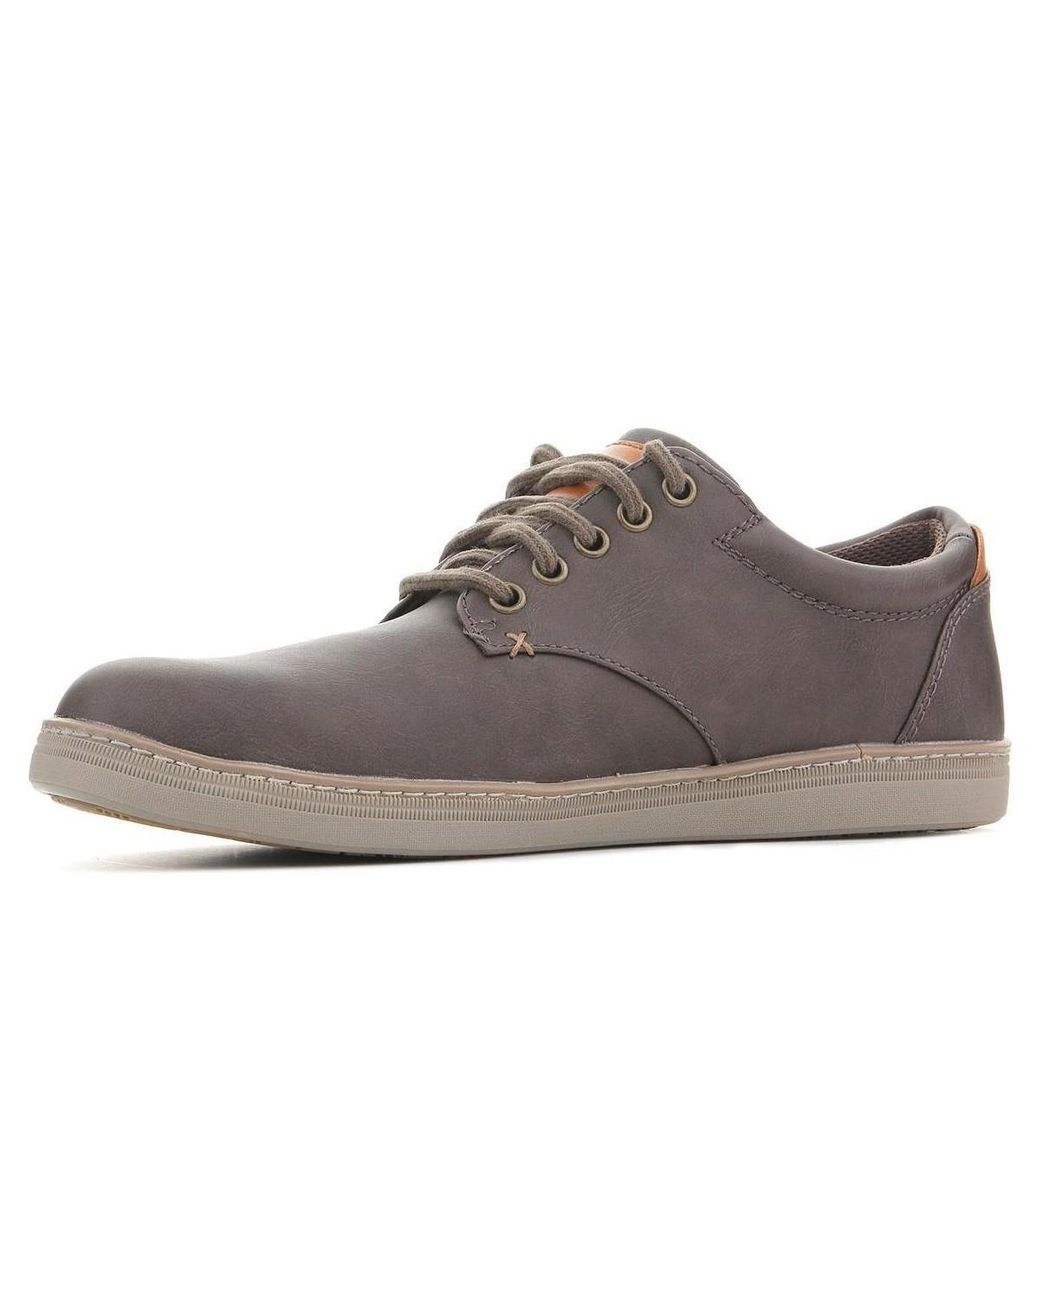 monitor sueño Preludio  Skechers Charcoal 65272-char Shoes (trainers) in Brown for Men - Lyst